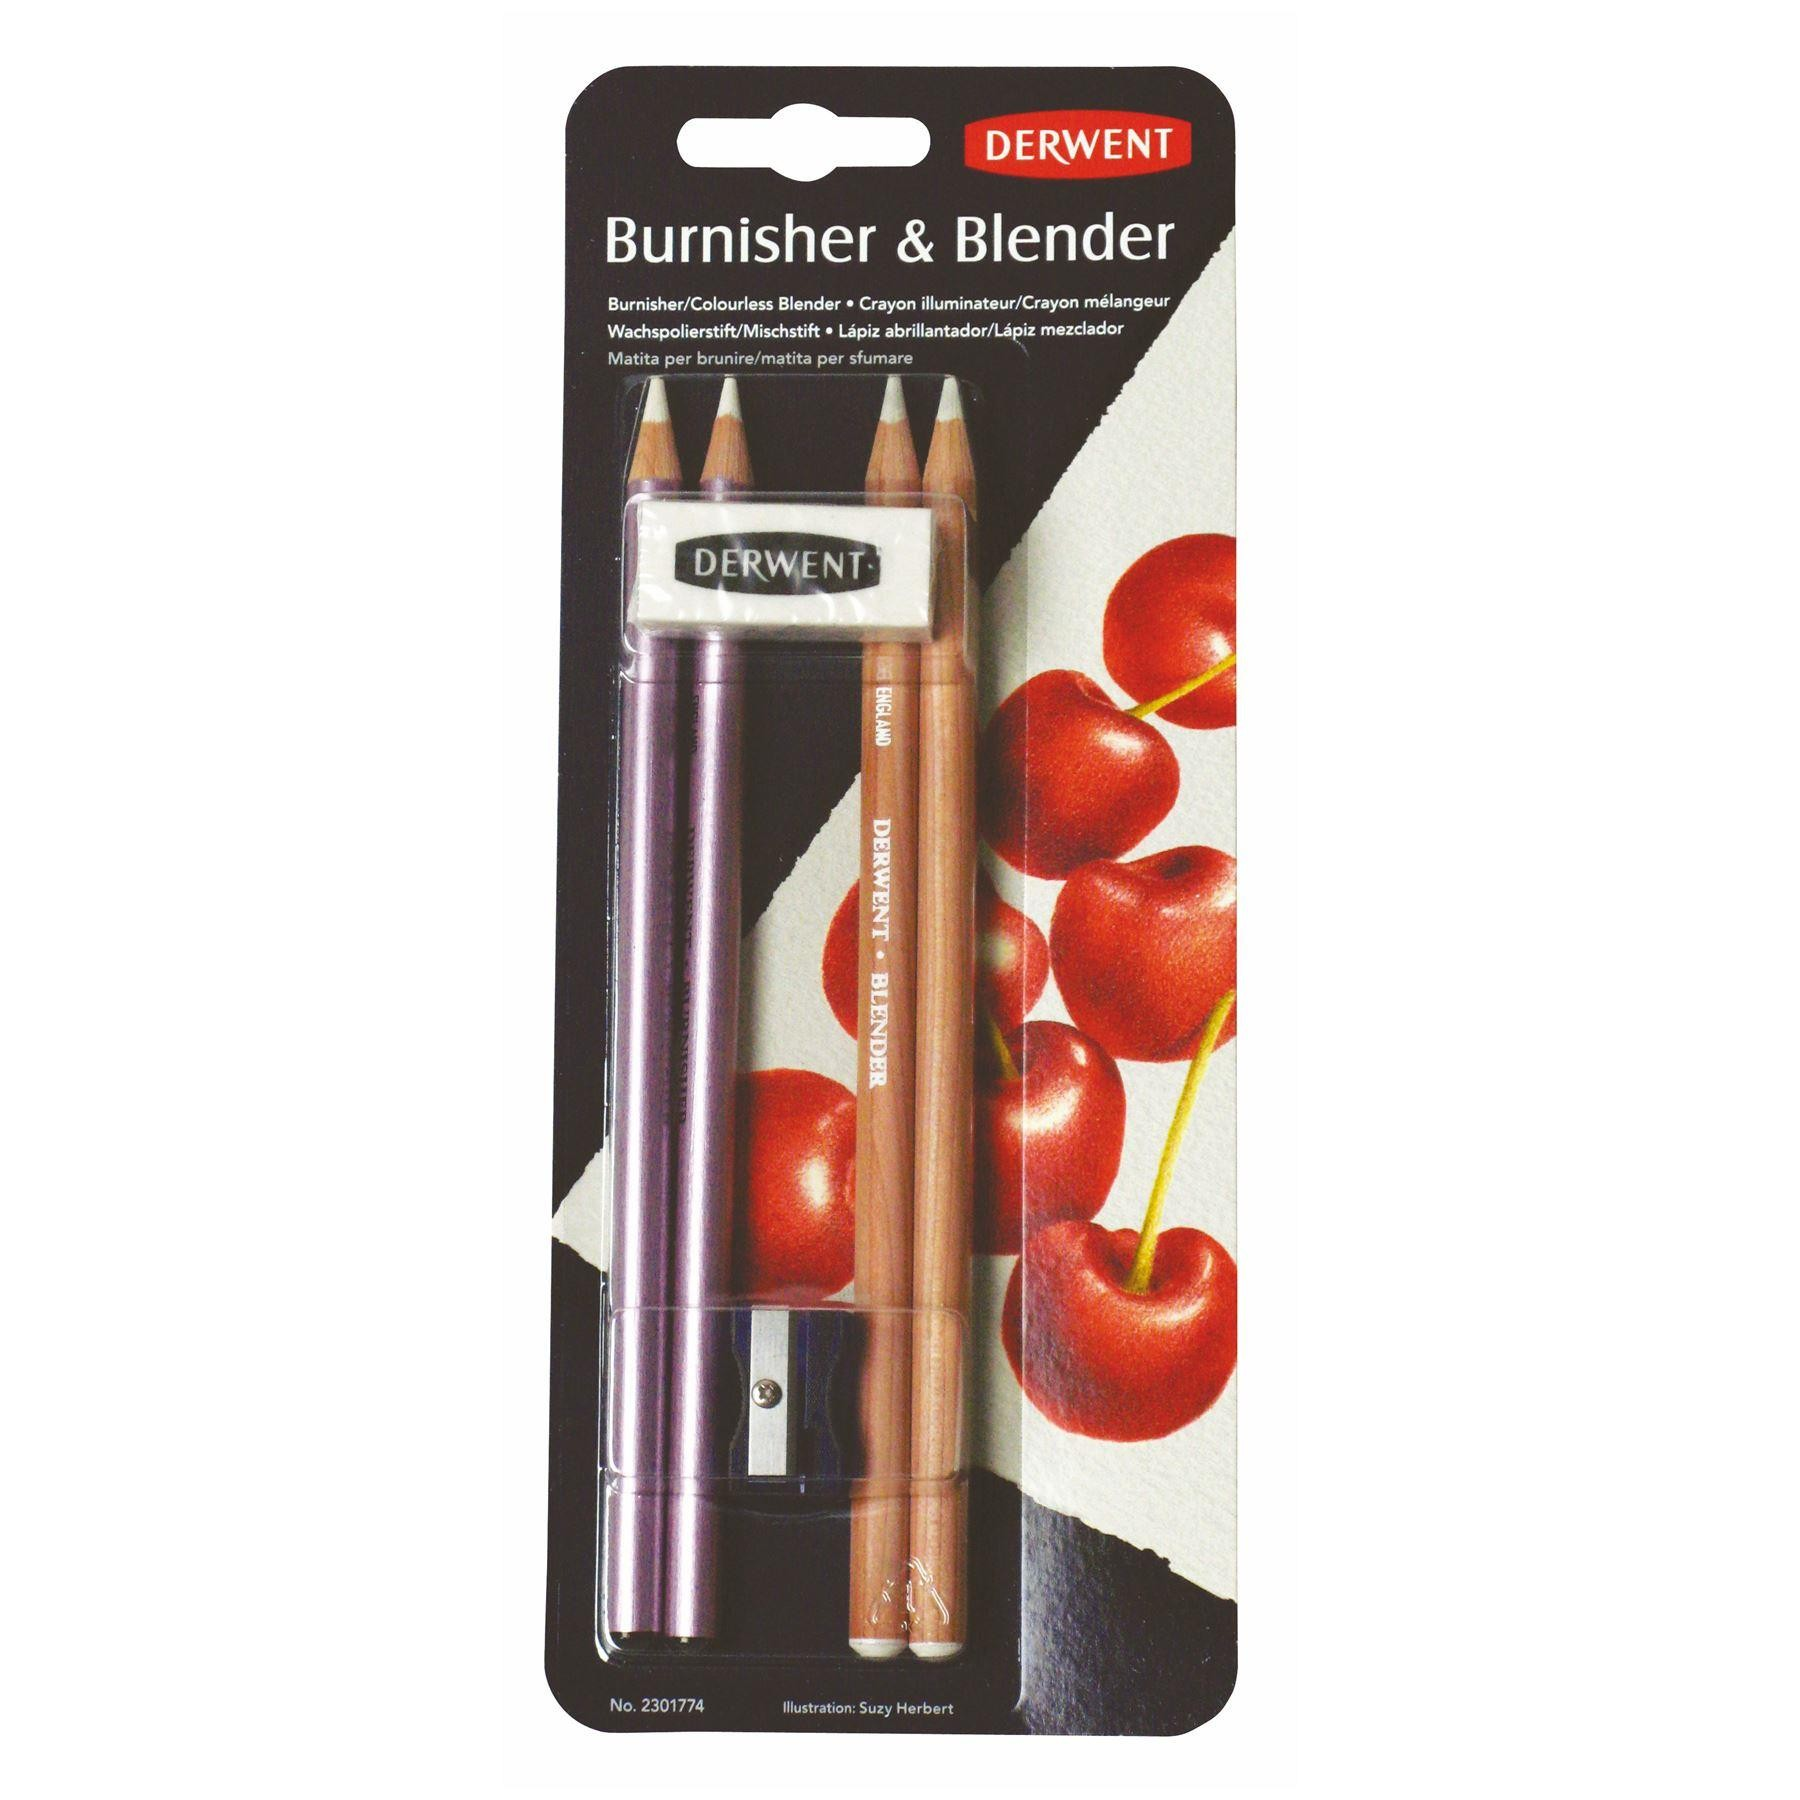 Derwent Blender & Burnisher pencils easer & sharpener Pack